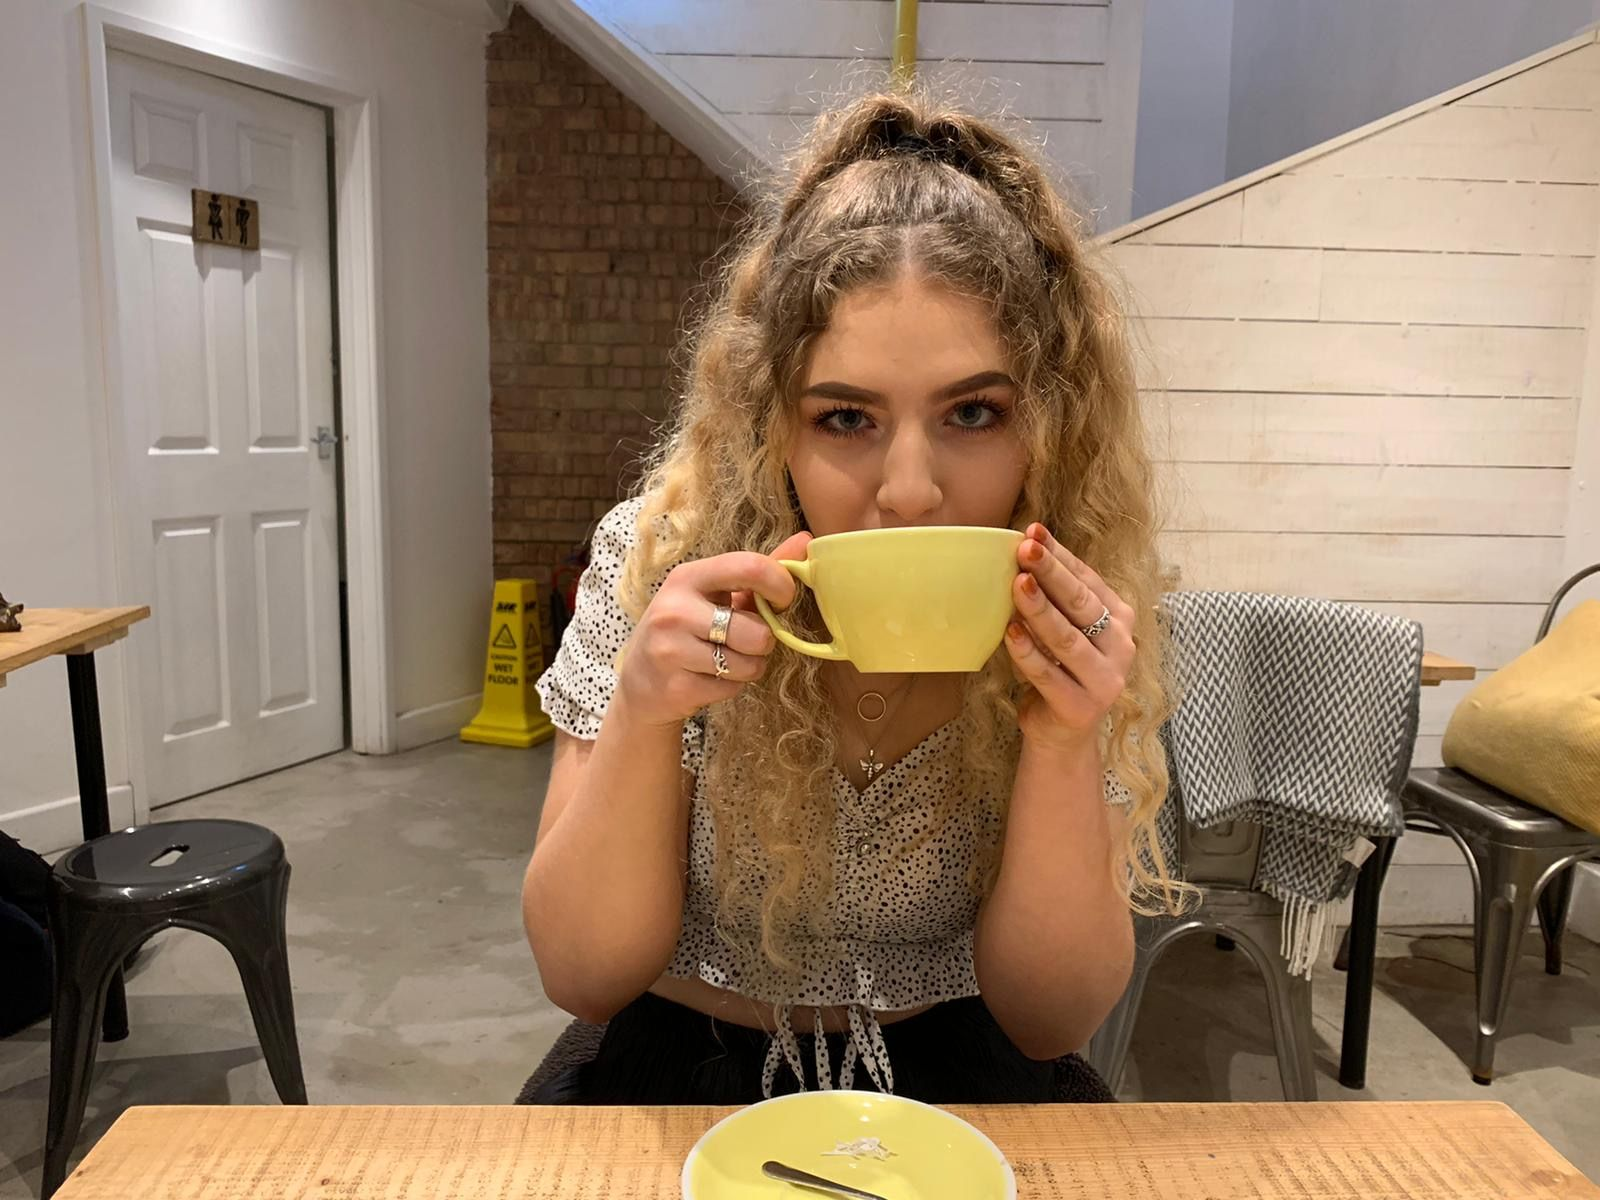 Image may contain: Coffee Cup, Cup, Bowl, Hardwood, Home Decor, Chair, Furniture, Plywood, Person, Human, Wood